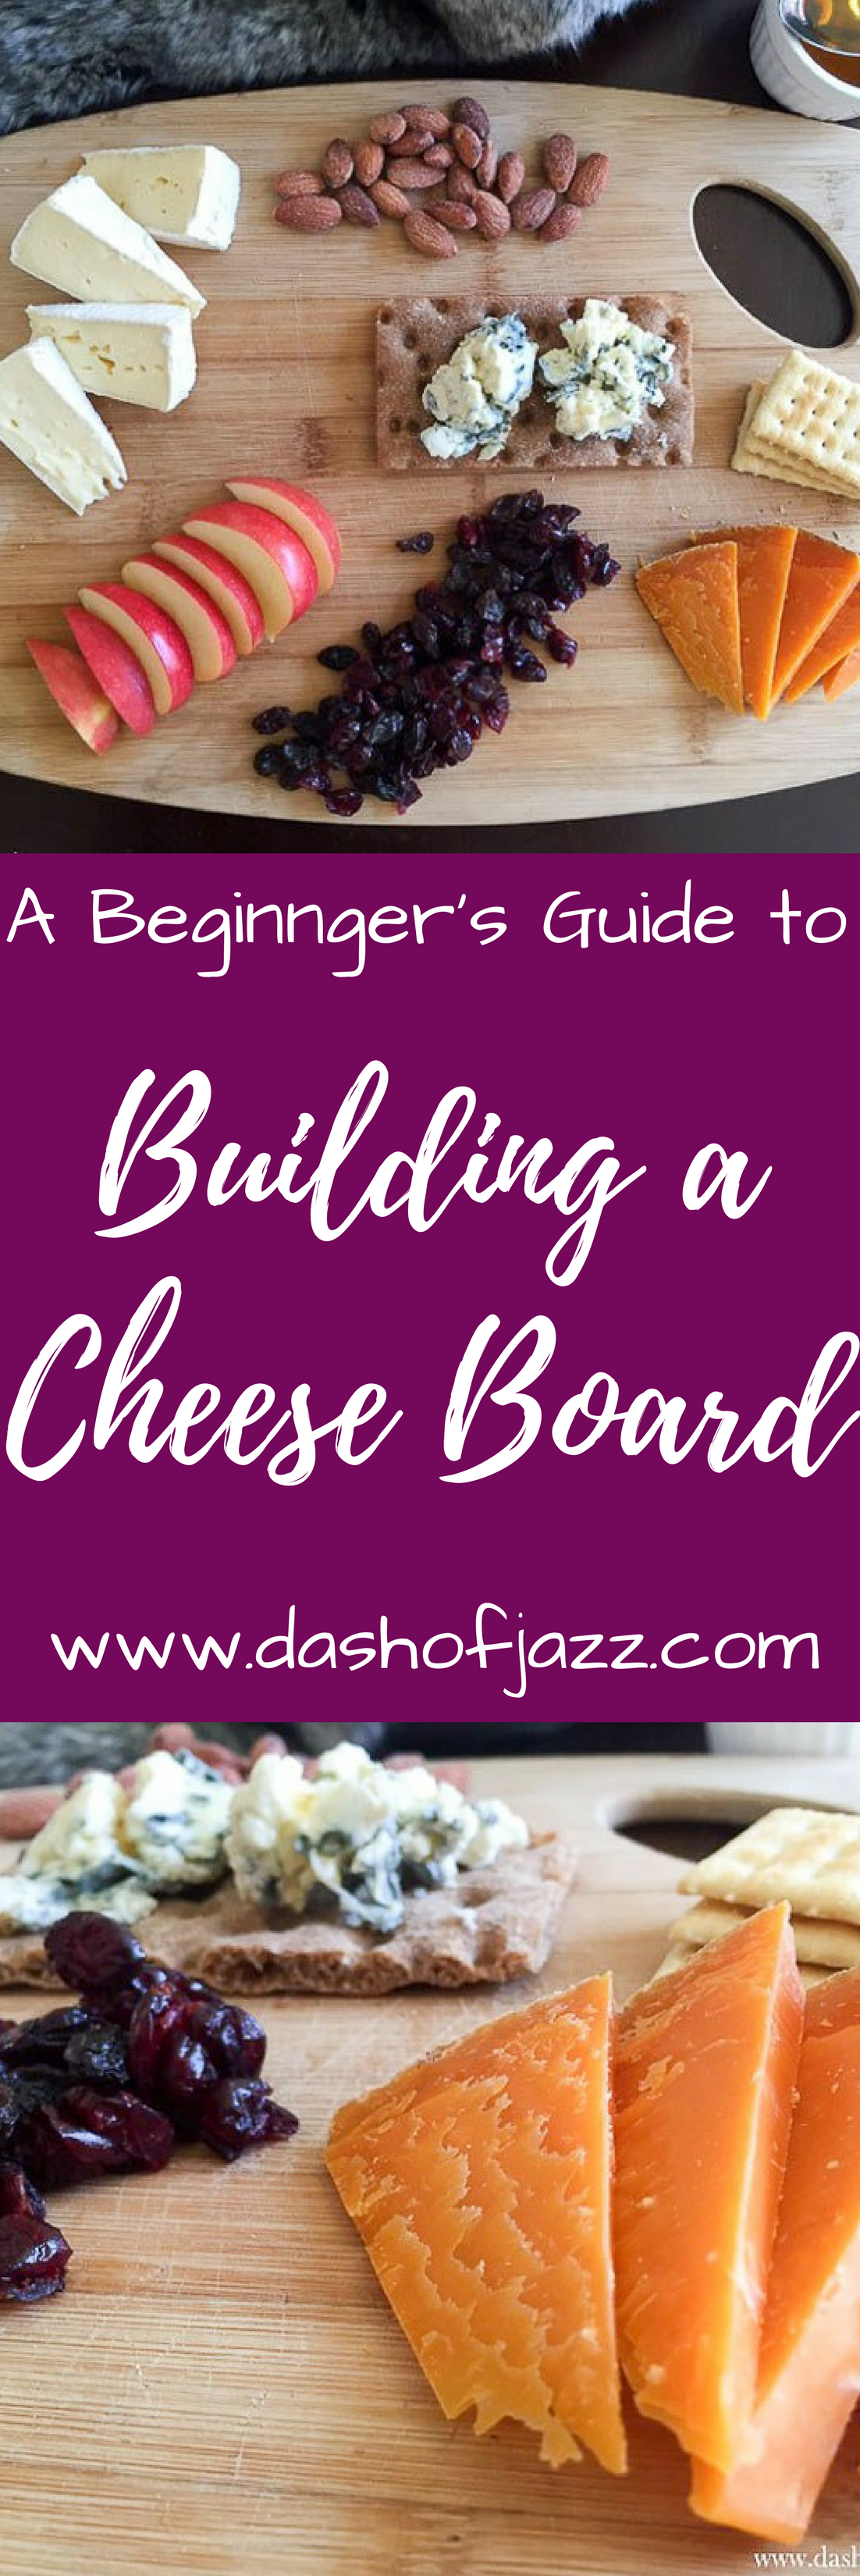 A few lessons from the French on how to create an easy cheese board whether you\'re making a snack or throwing a party, start with a beginner\'s cheese board by Dash of Jazz #cheeseboard #charcuterieboard #easycheeseboard #easyappetizer #Frenchcheeseboard